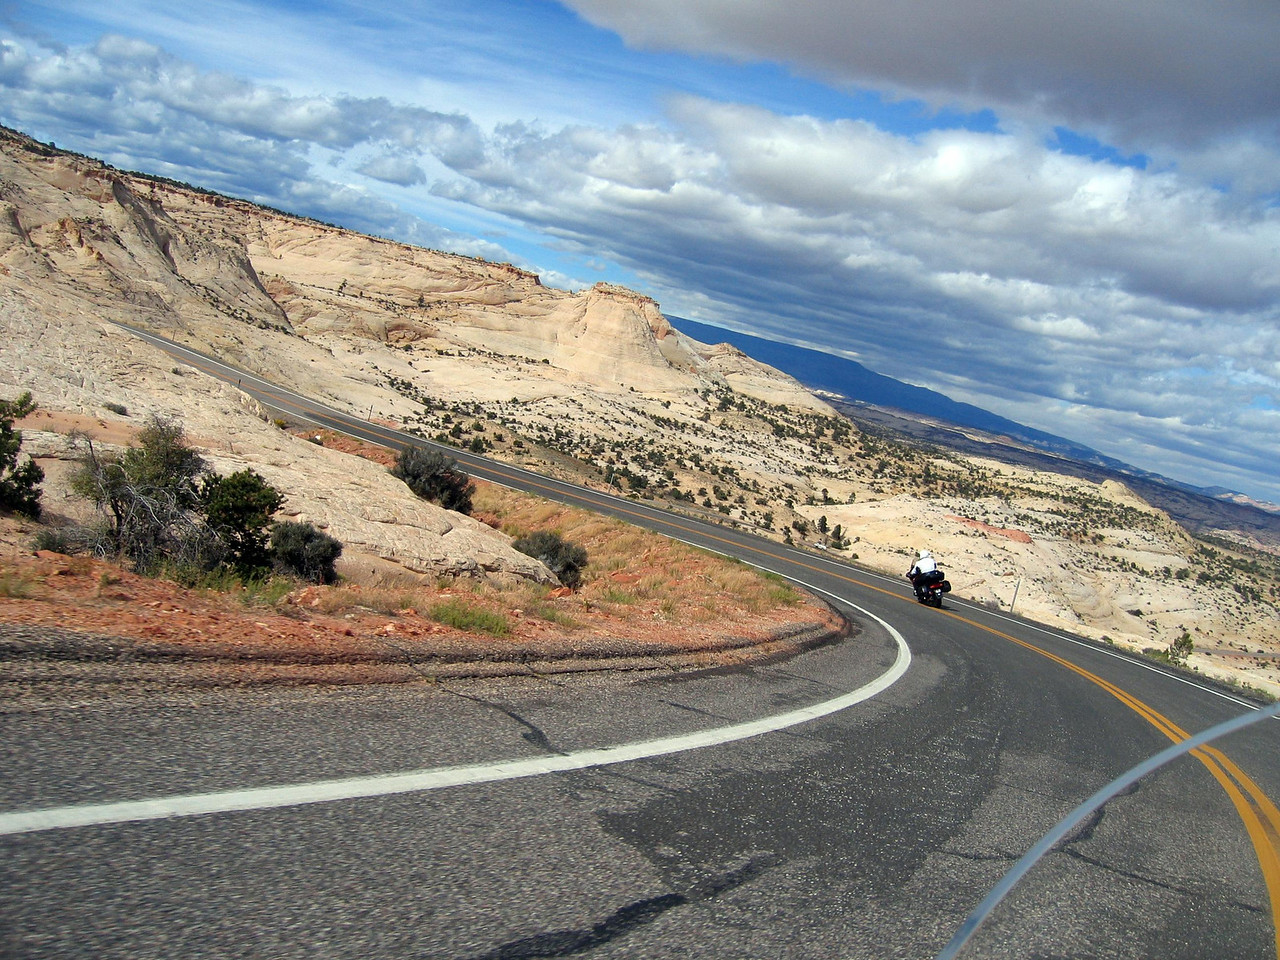 Beautiful weather, nice roads, no traffic.  Touring on a motorcycle doesn't get much better than this.